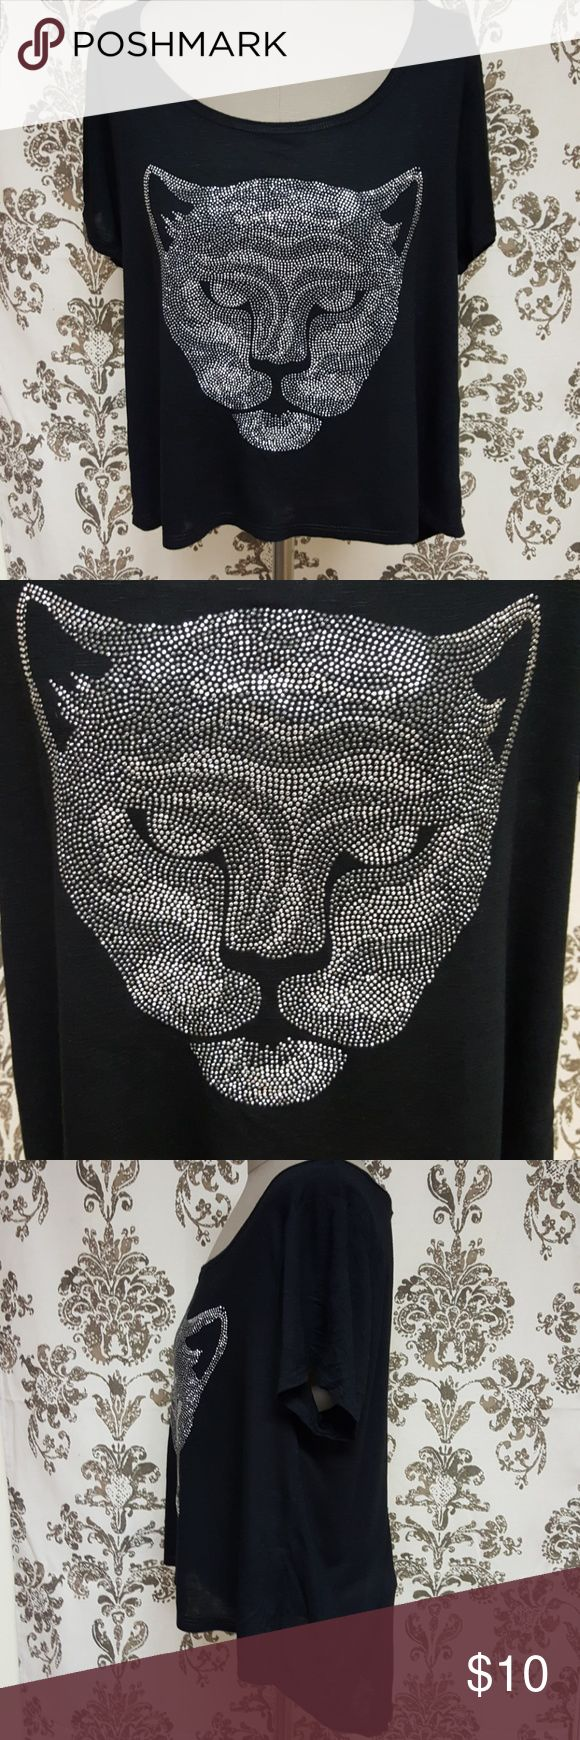 Black and silver panther top Black short sleeve top with silver rhinestone panther face on front. High-low hem. Forever 21 Tops